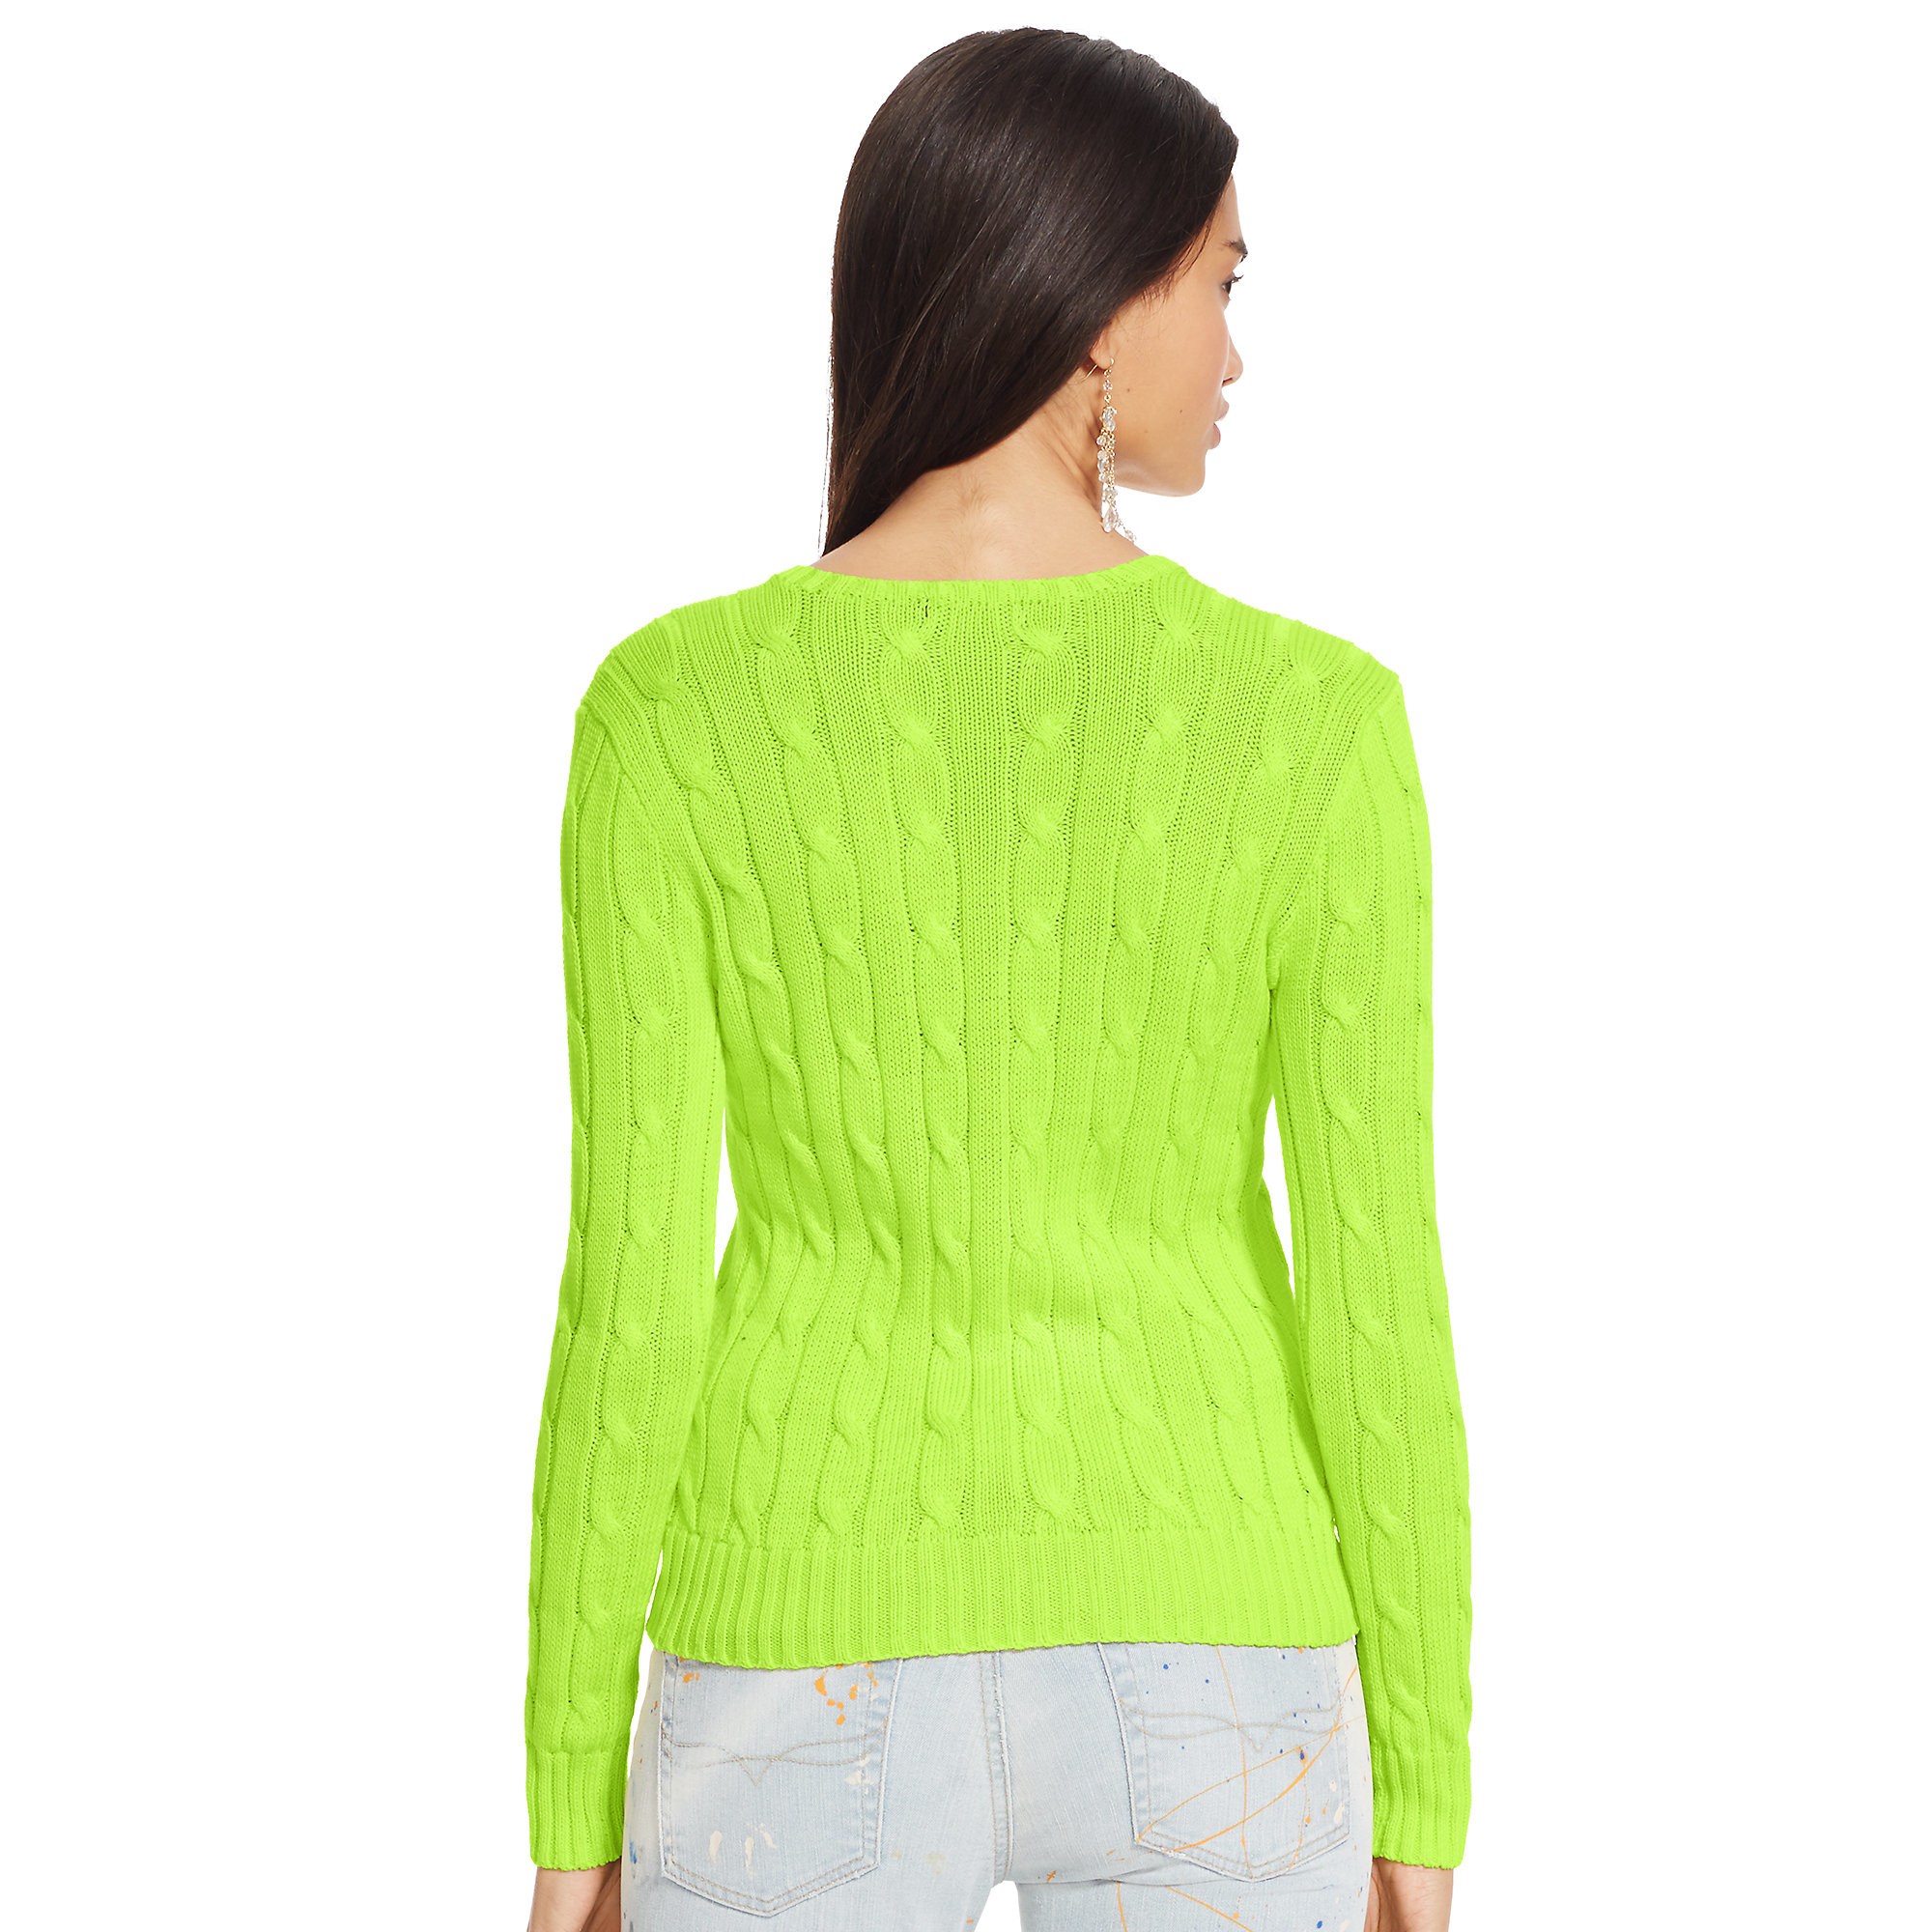 Gallery. Women's Cable Knit Sweaters